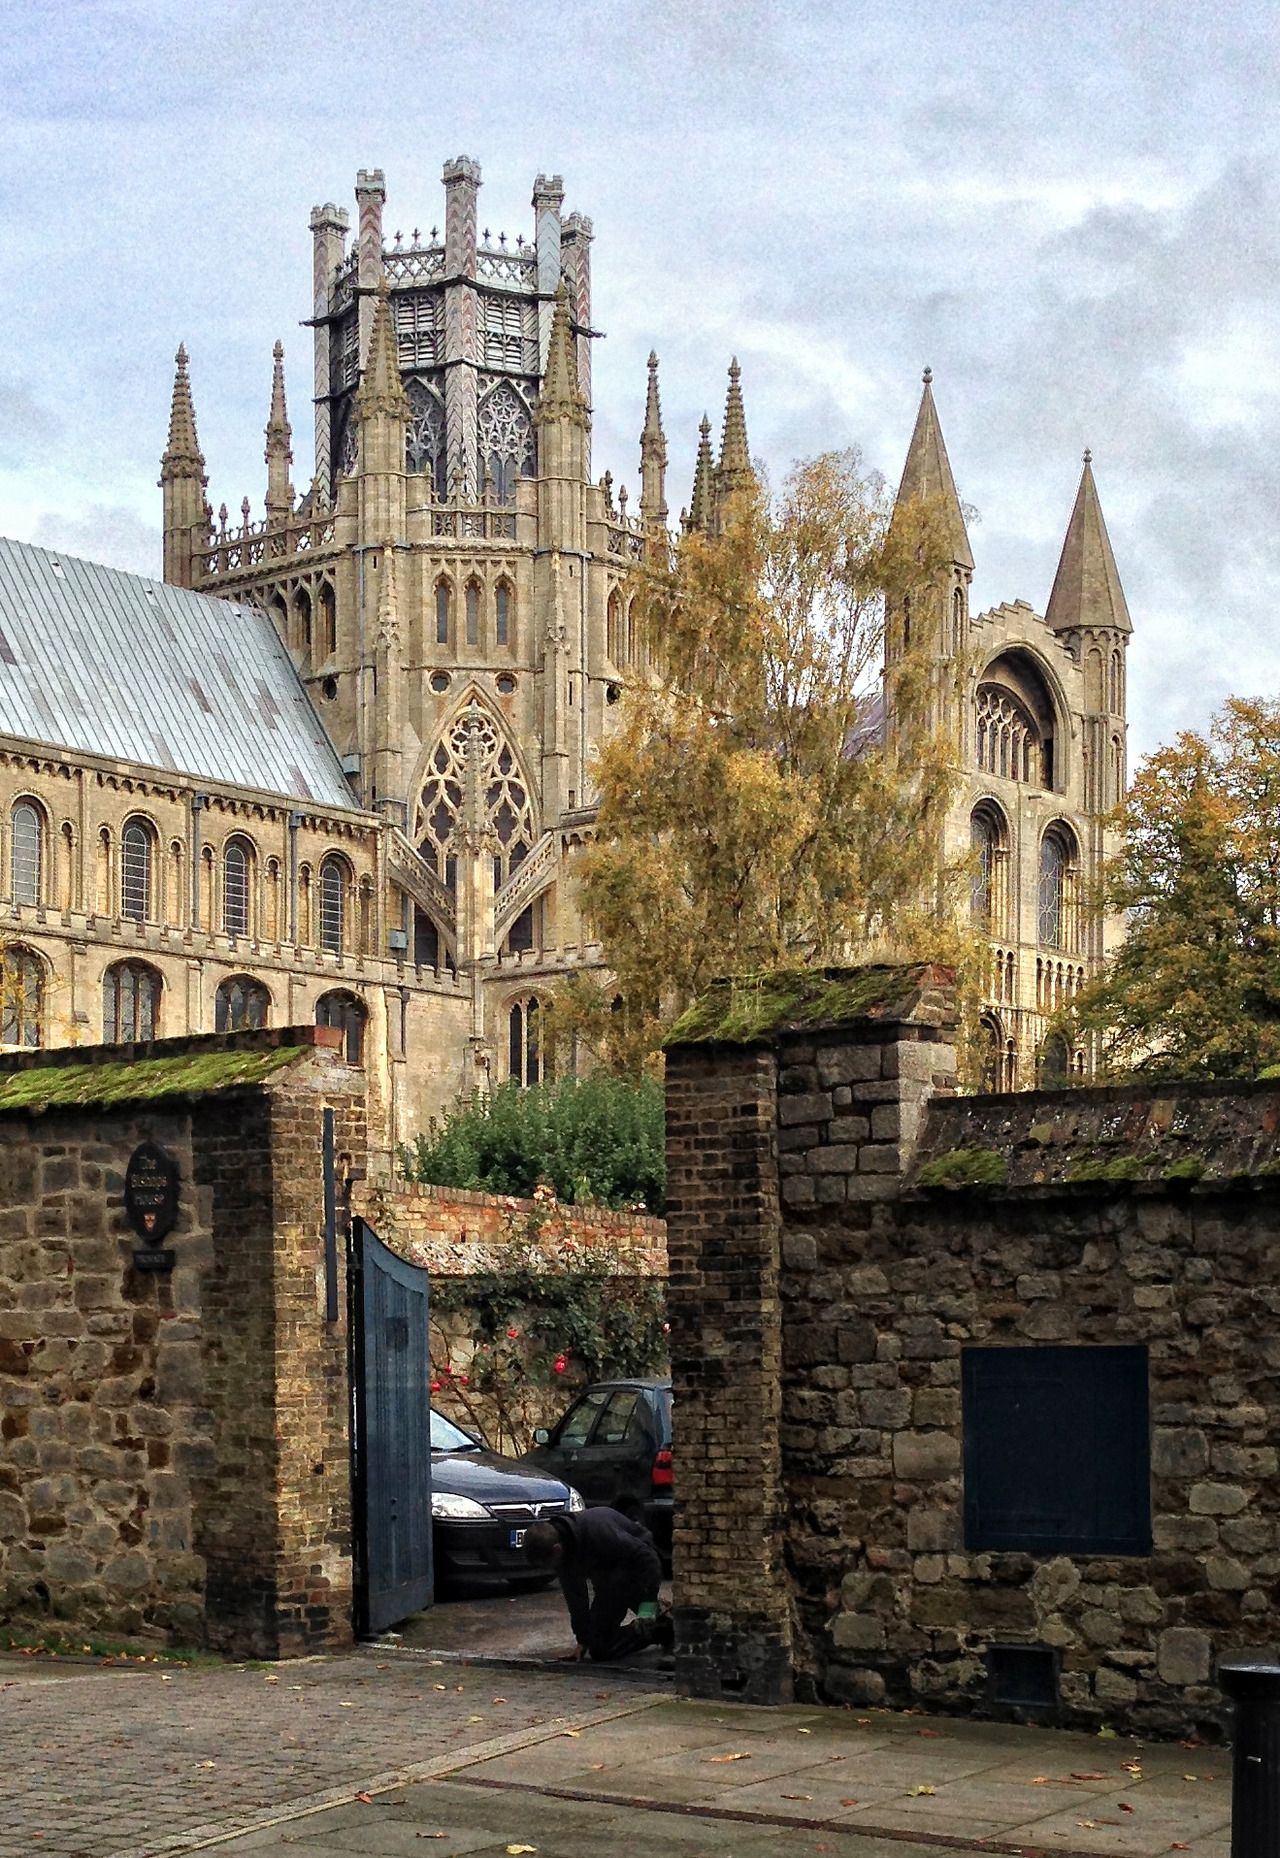 Cambridgeshire - Ely Cathedral in the autumn